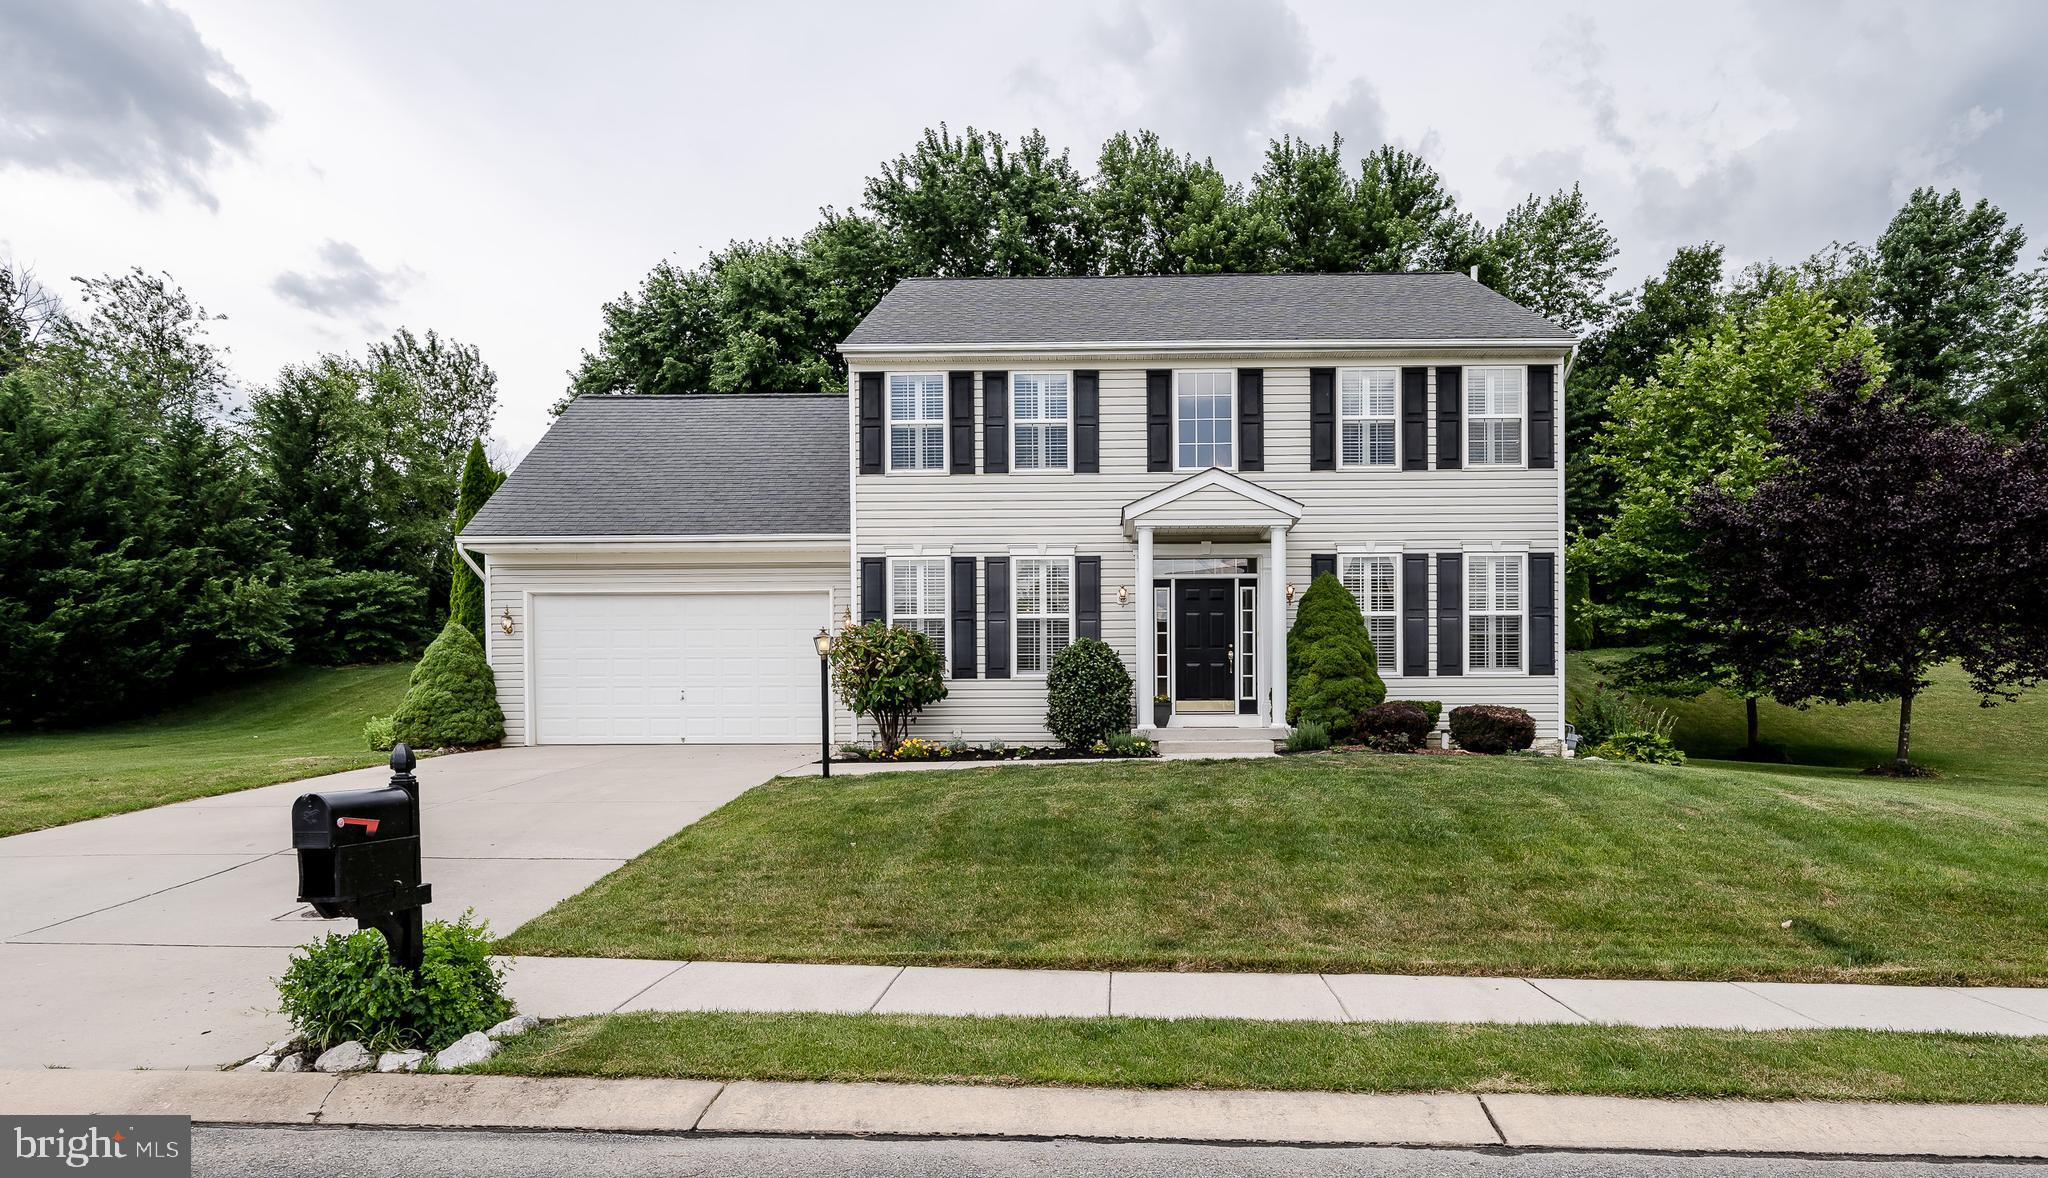 111 GLENRAY COURT, NEW FREEDOM, PA 17349